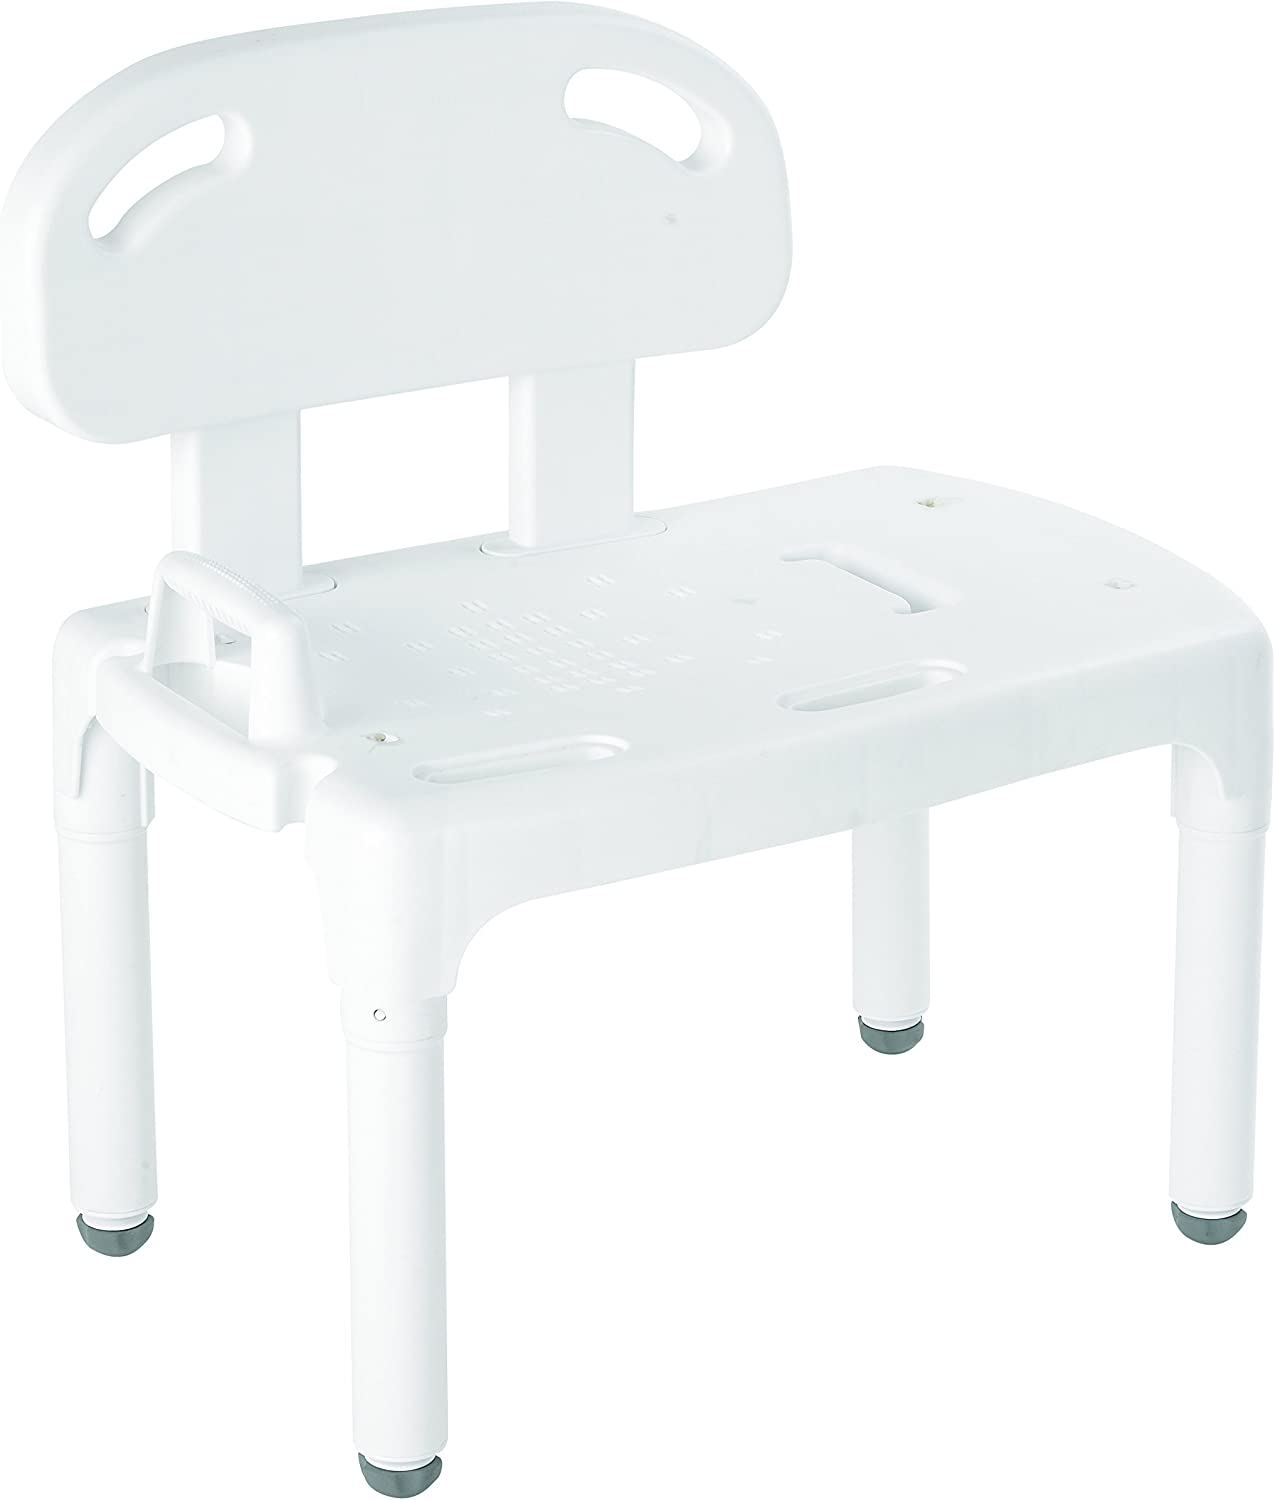 Carex Health Brands Universal Tub Transfer Bench - Shower Bench and Bath Seat - Chair Converts to Right or Left Hand Entry